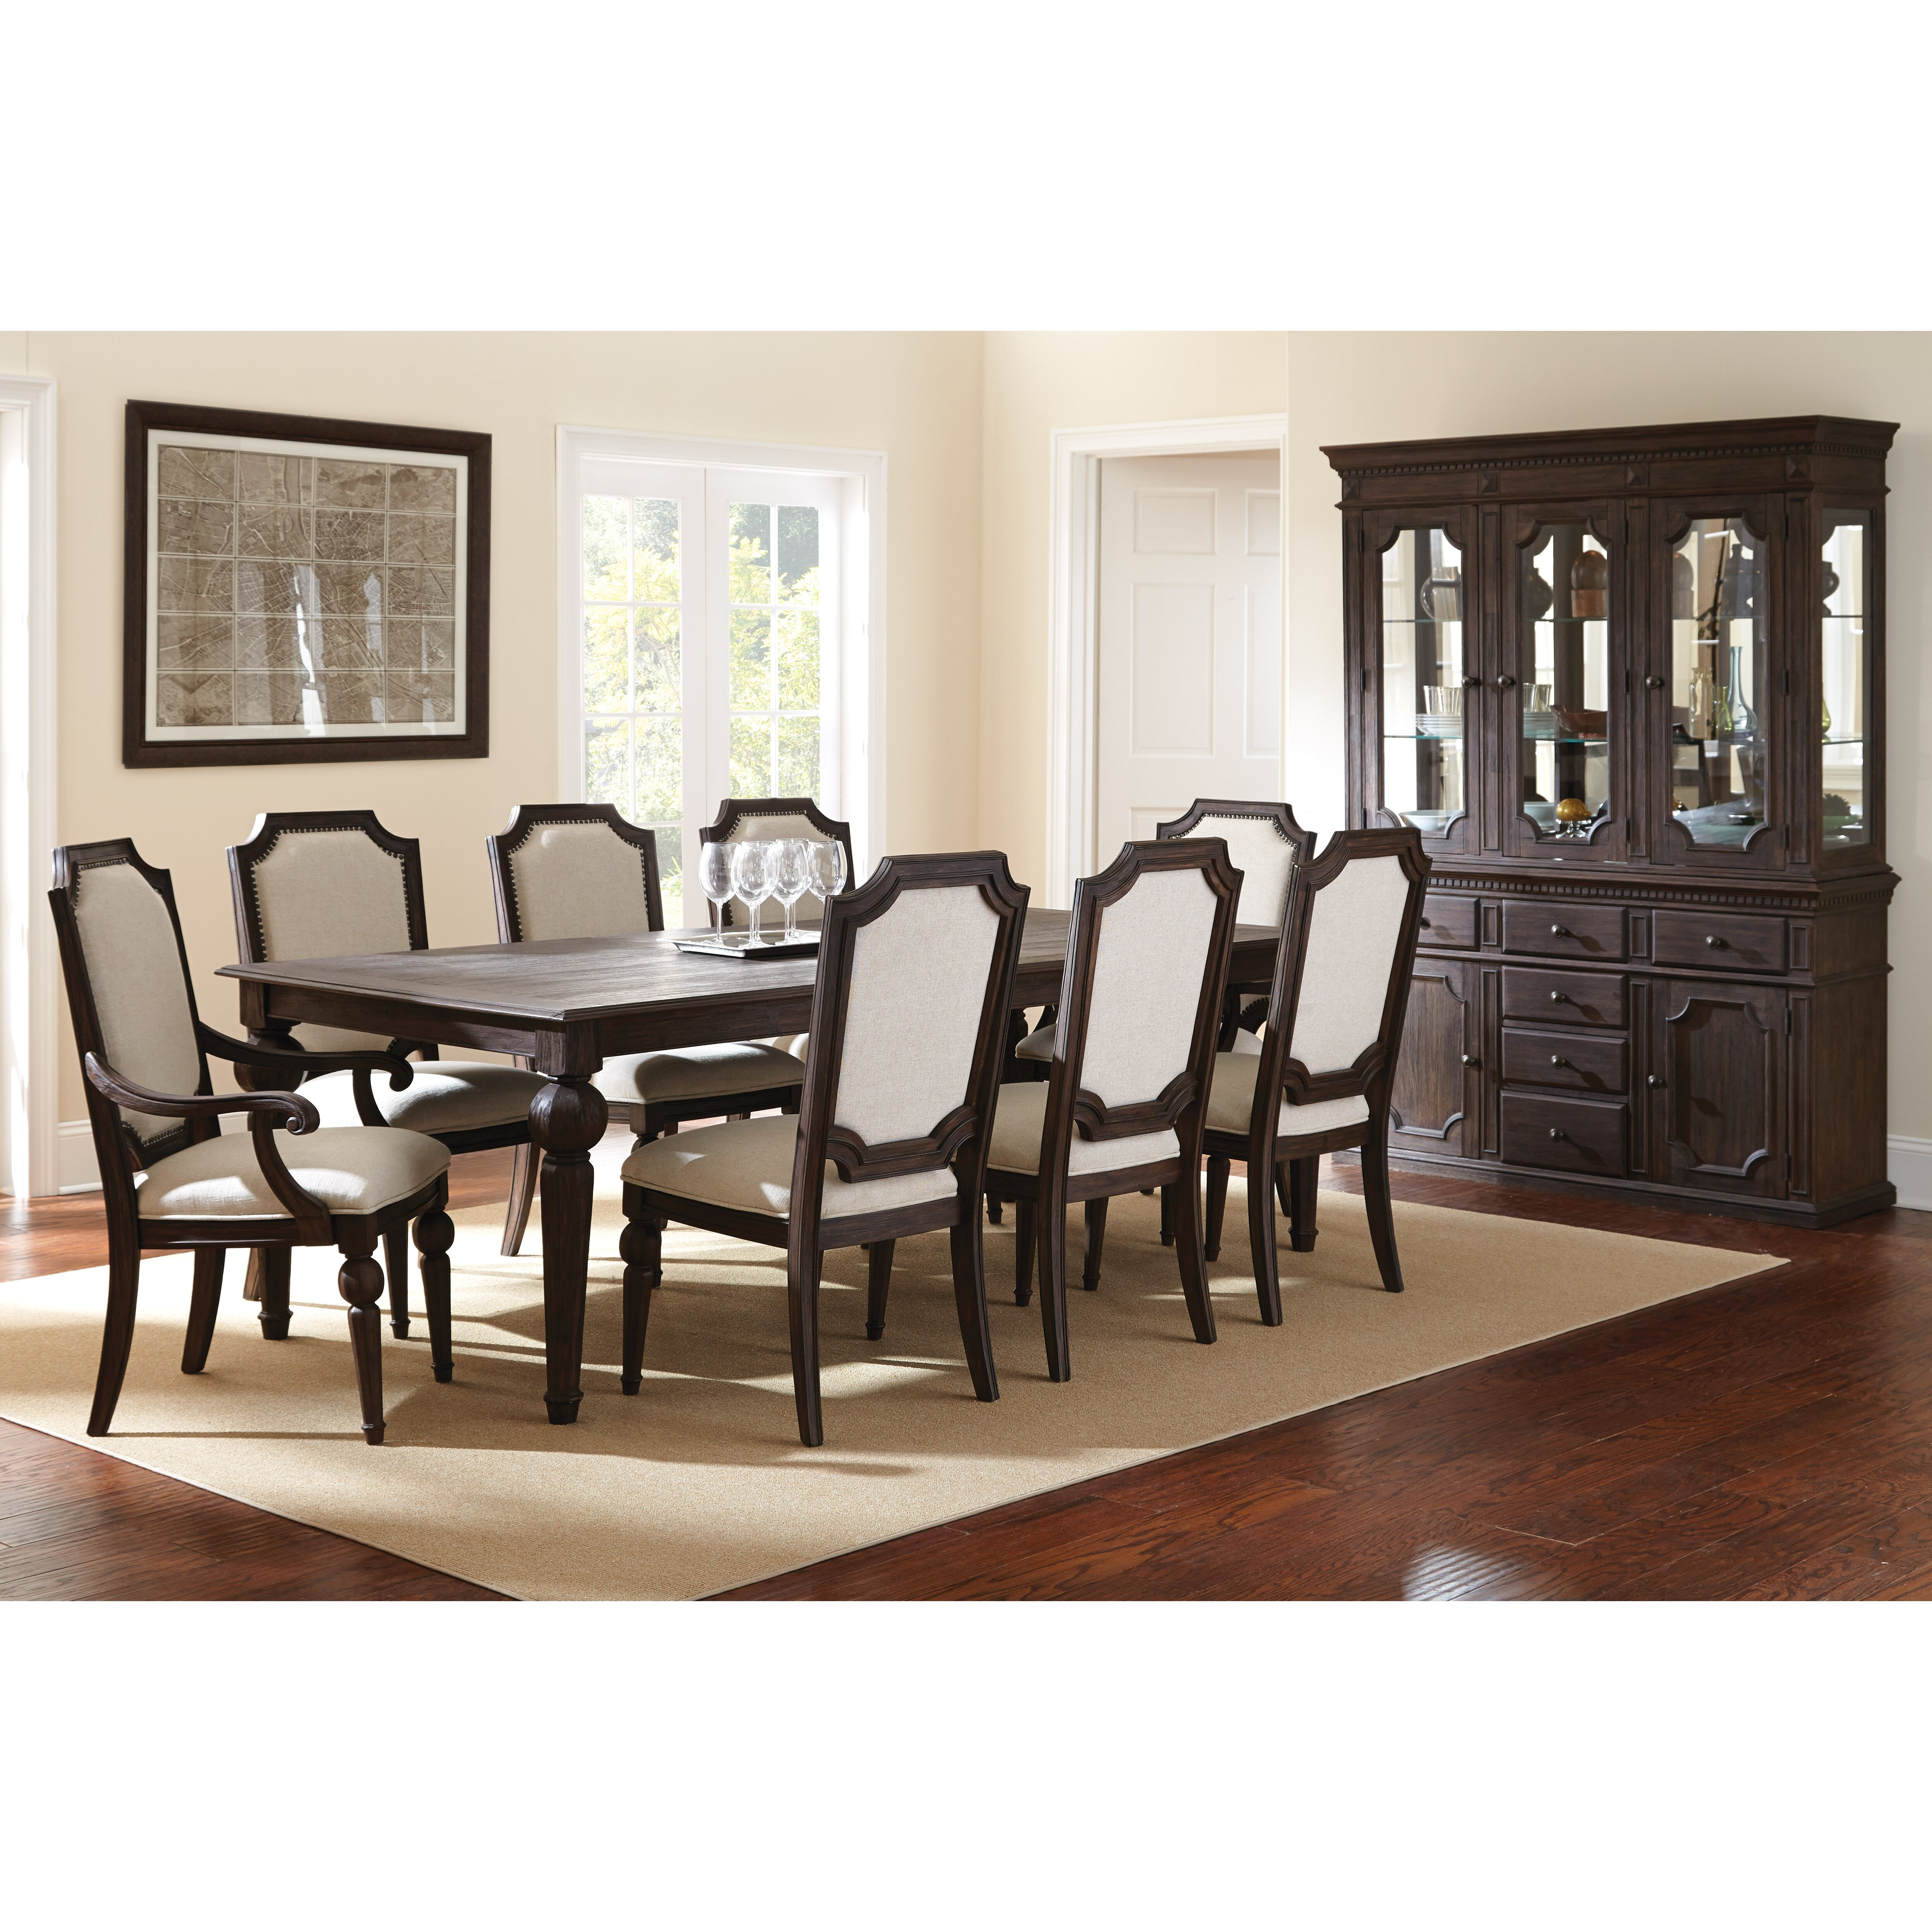 Canora grey shadwell 11 piece dining set wayfair for The best dining room sets